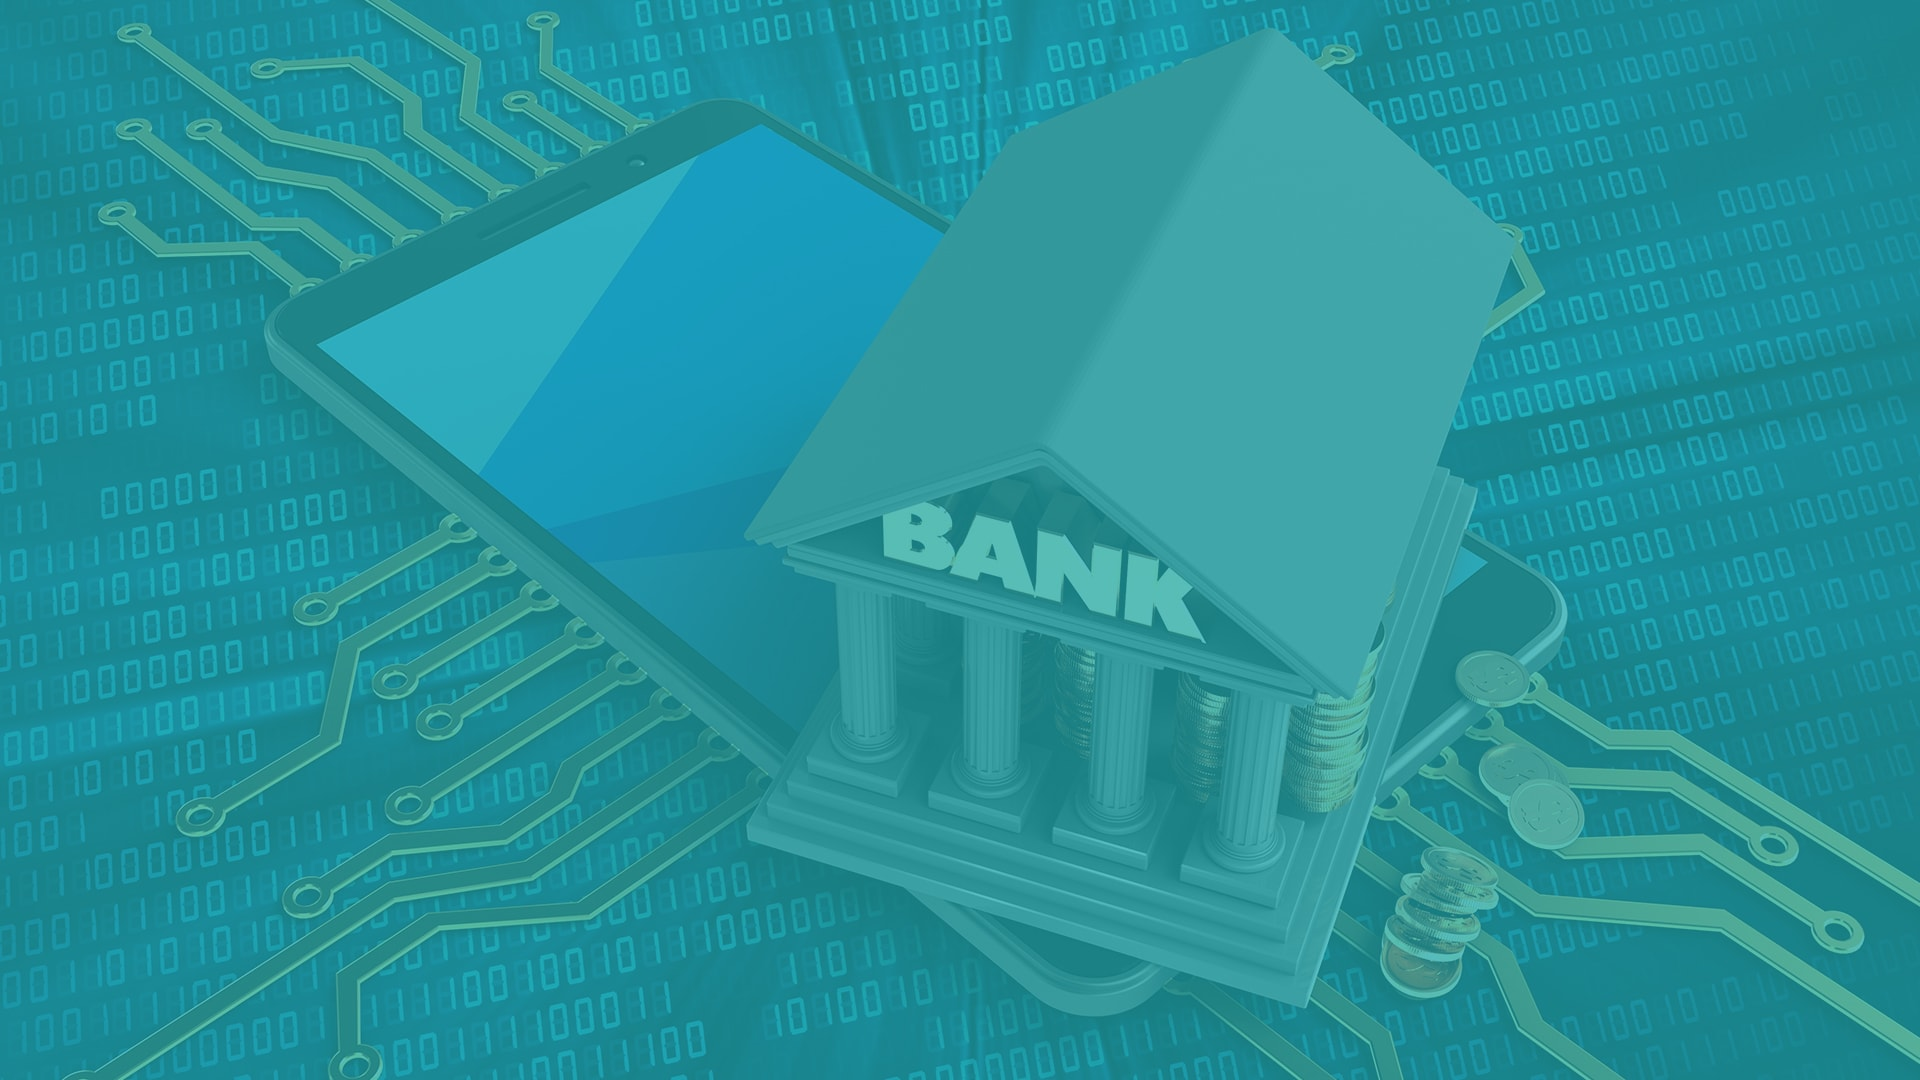 What are the benefits of CORE banking solutions?